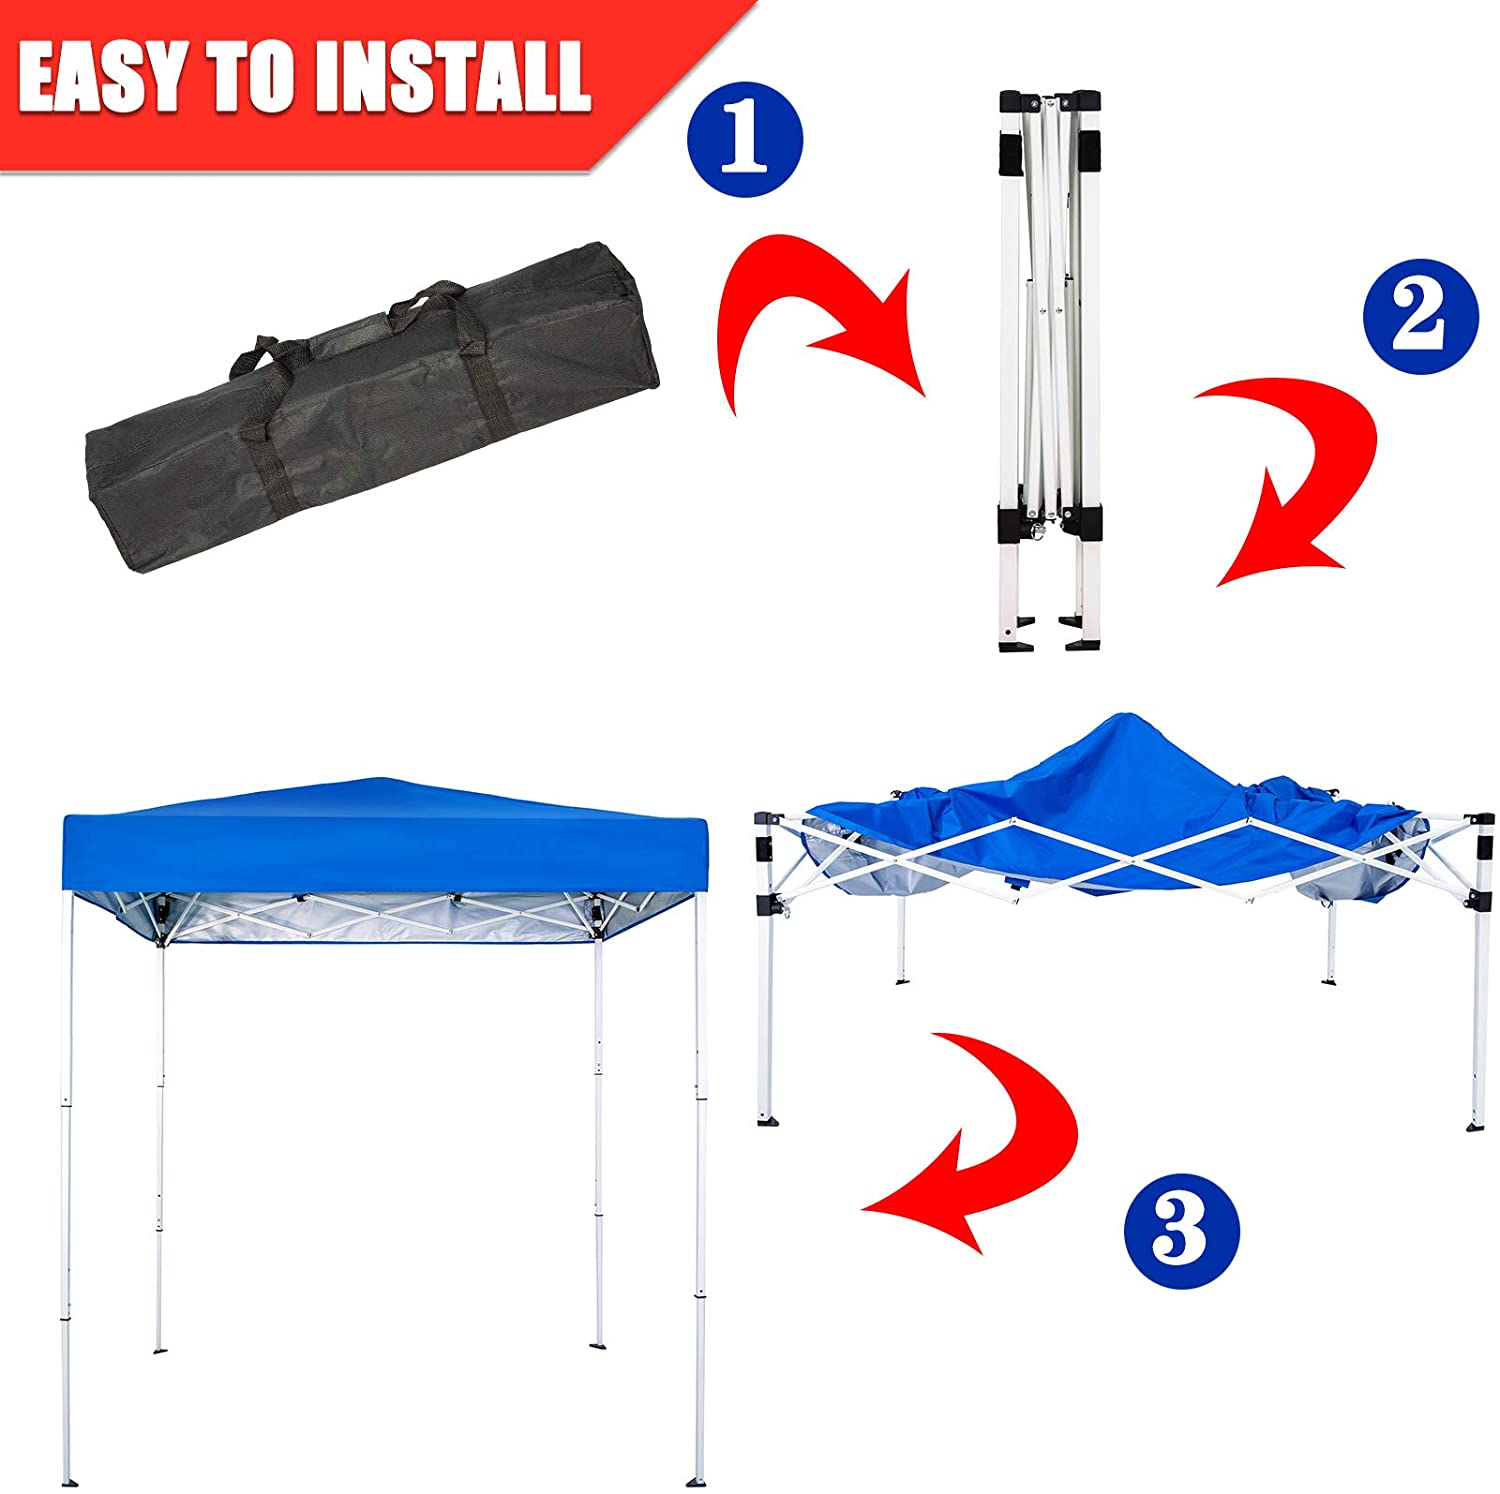 Royal Blue Sunnyglade 6x4 Ft Pop-Up Canopy Tent Outdoor Portable Instant Shelter Folding Canopy with Carry Bag